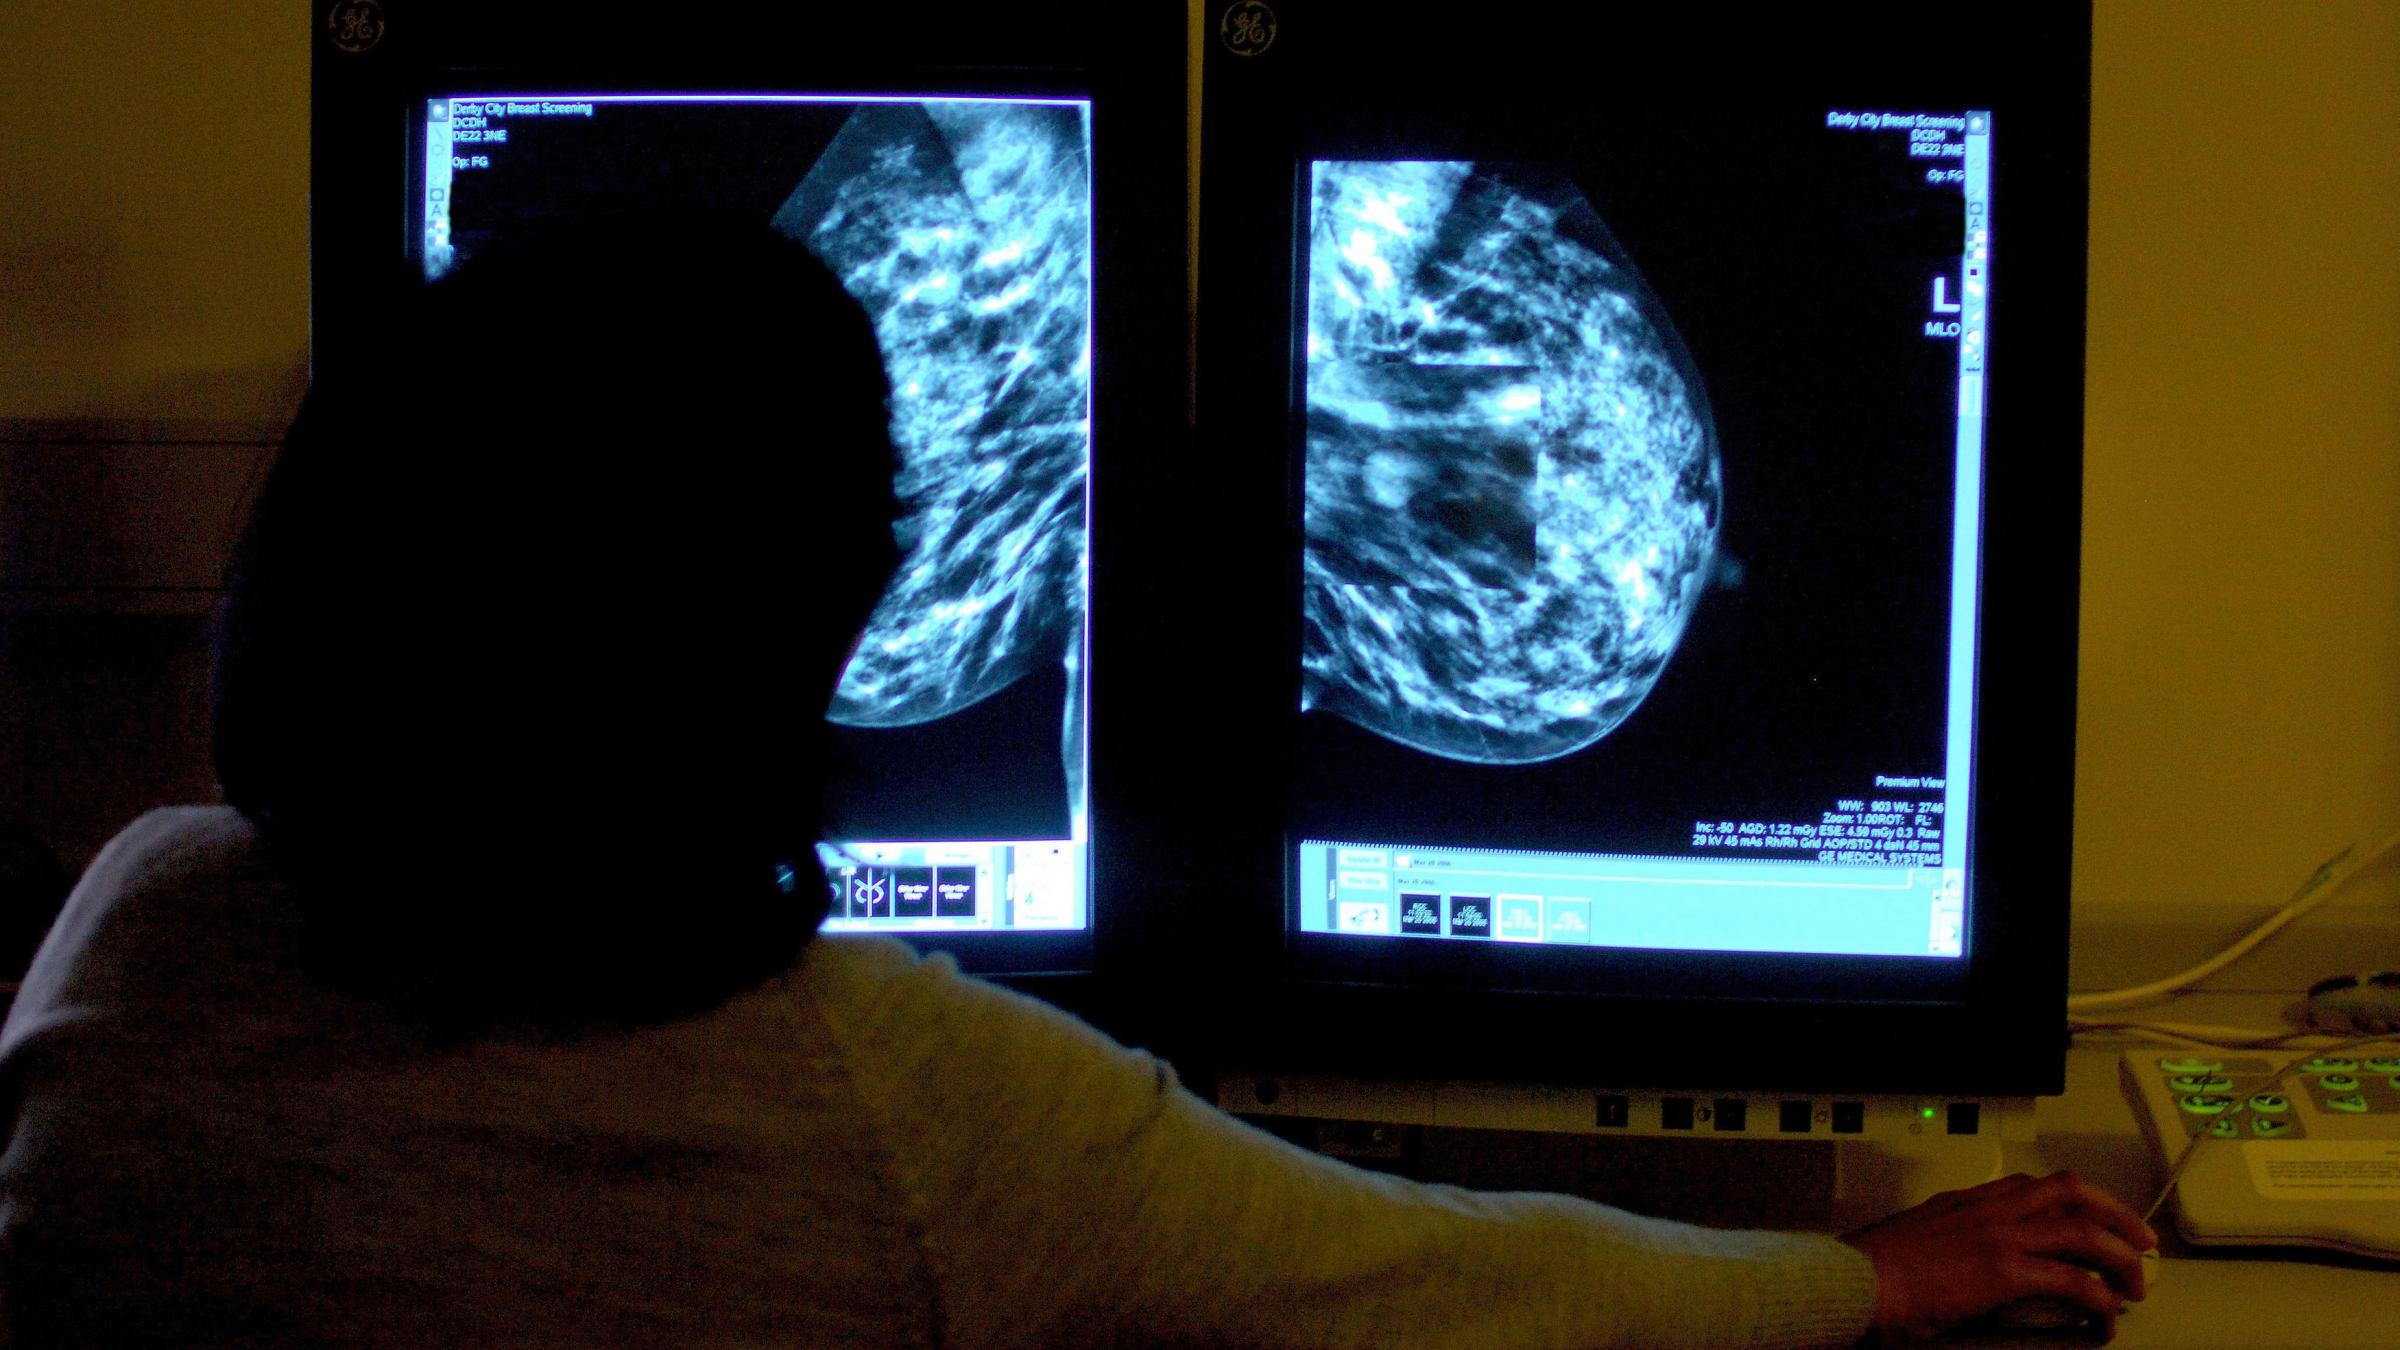 Breast cancer beast can be 'tamed', say scientists